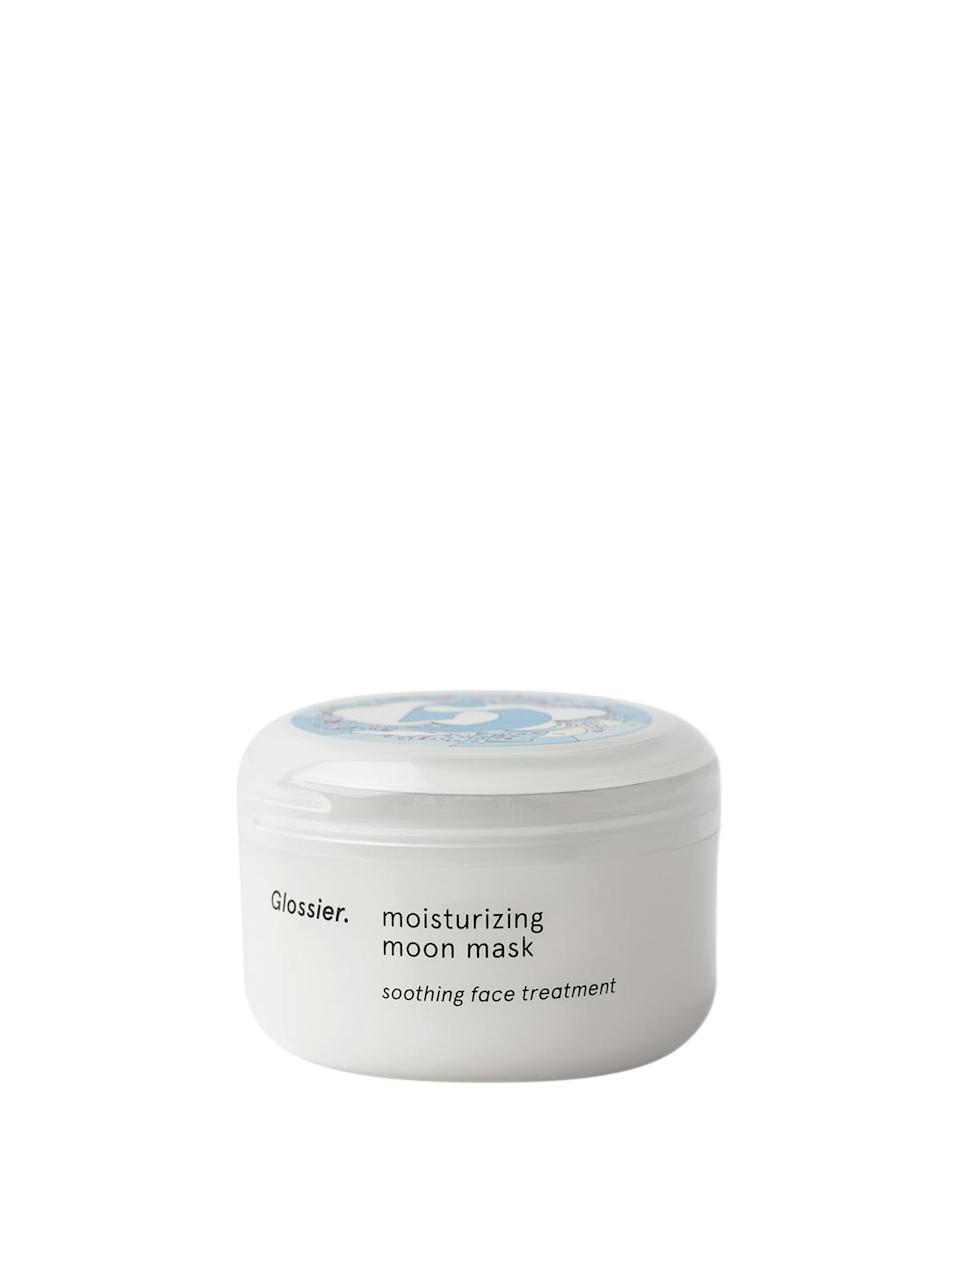 """<h3>Moisturizing Moon Mask<br></h3> <br>Like your thickest, most hydrating moisturizer on steroids, this creamy mask does what it says, soothing and quenching dry, dull skin. We suggest stashing it in the fridge once the weather warms up — its cooling, tall-drink-of-water effect is perfect for rehabbing skin post-sun exposure.<br><br><strong>Glossier</strong> Moisturizing Moon Mask, $, available at <a href=""""https://go.skimresources.com/?id=30283X879131&url=https%3A%2F%2Fglossier.sjv.io%2FA1YDN"""" rel=""""nofollow noopener"""" target=""""_blank"""" data-ylk=""""slk:Glossier"""" class=""""link rapid-noclick-resp"""">Glossier</a><br>"""